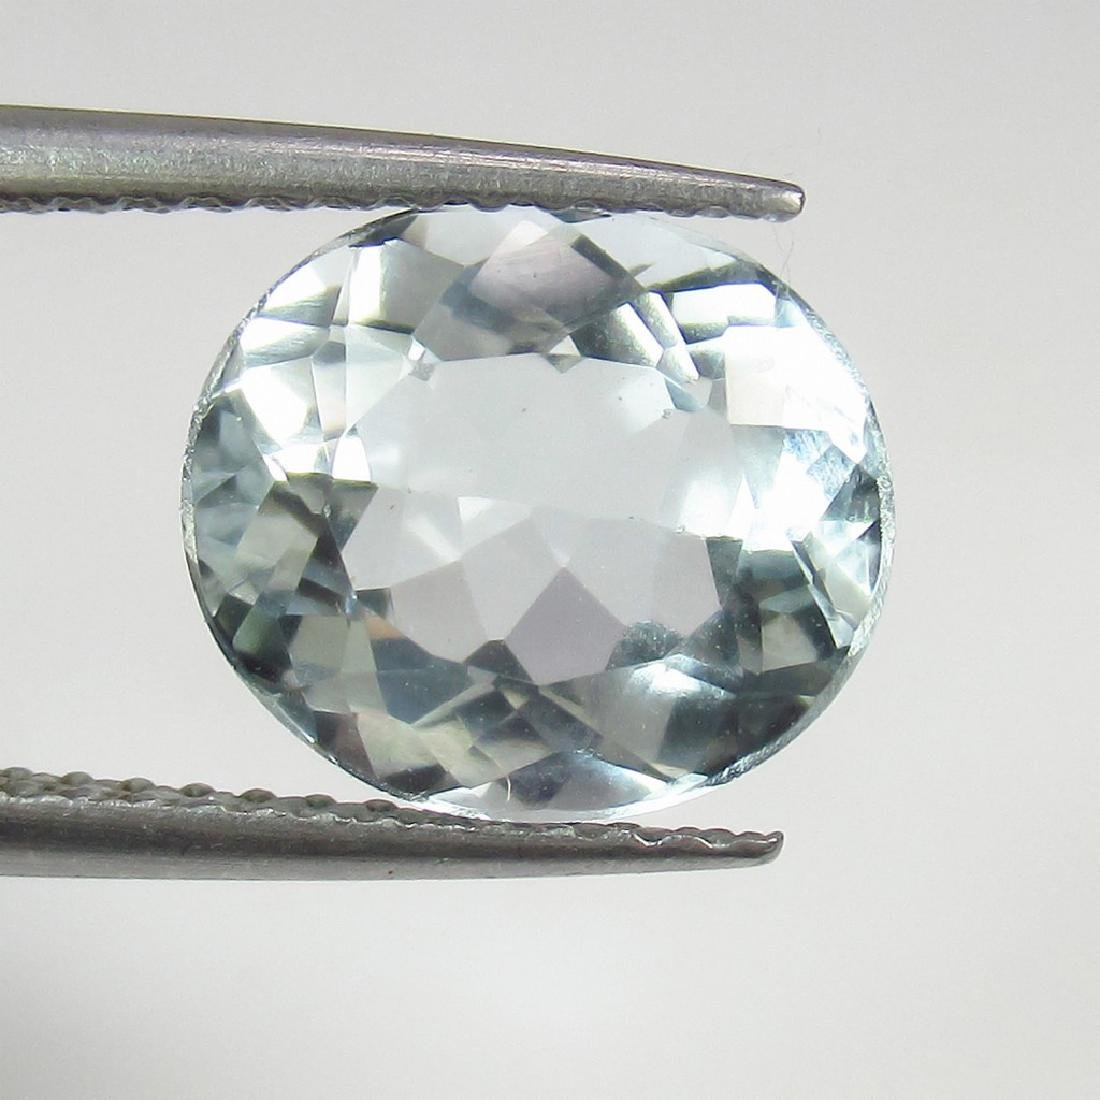 2.42 Ct Genuine Loose Aquamarine Oval cut Top Quality